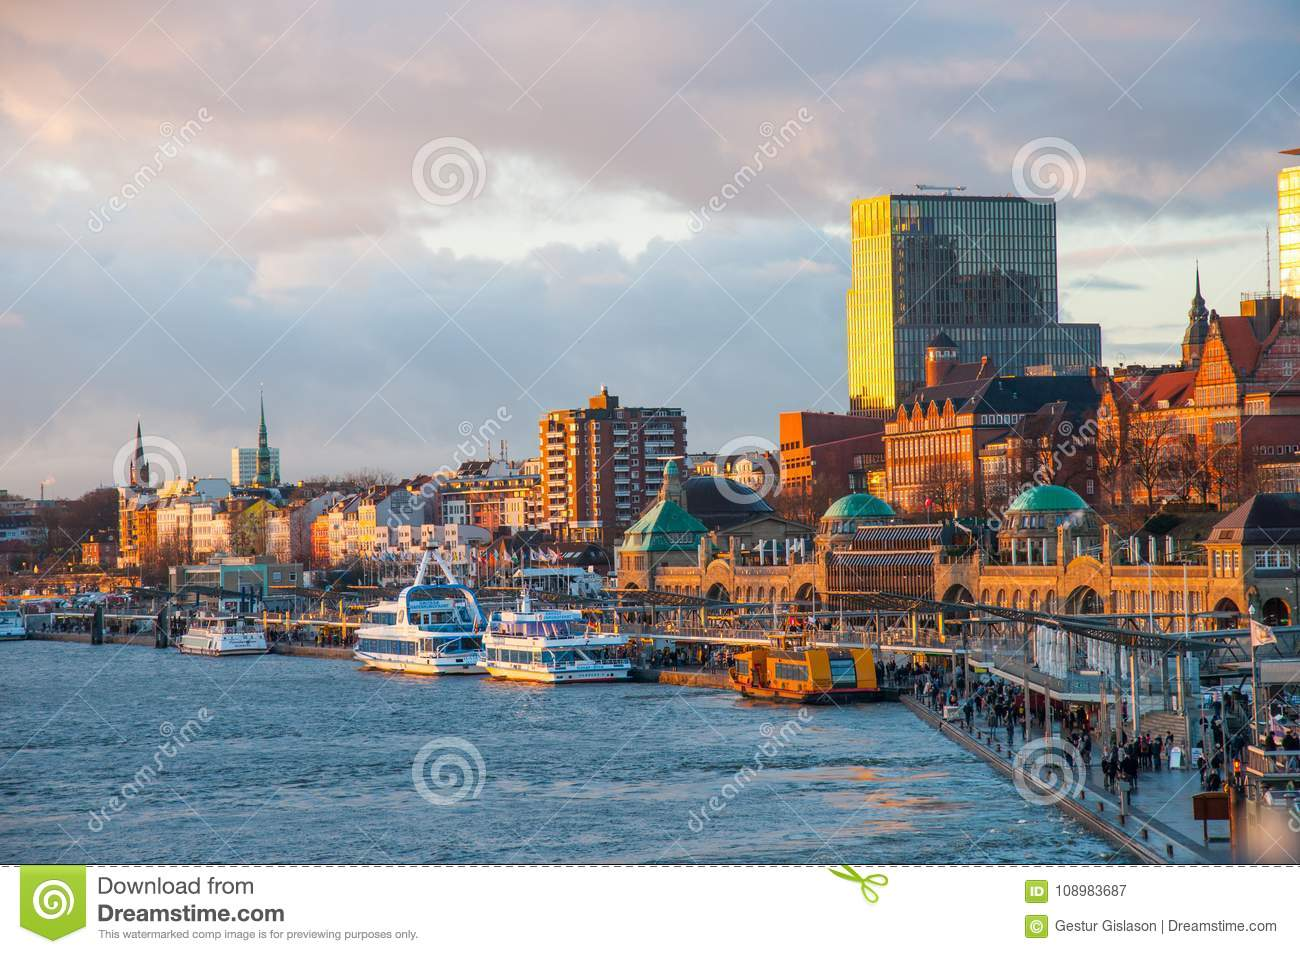 The waterfront of Hamburg